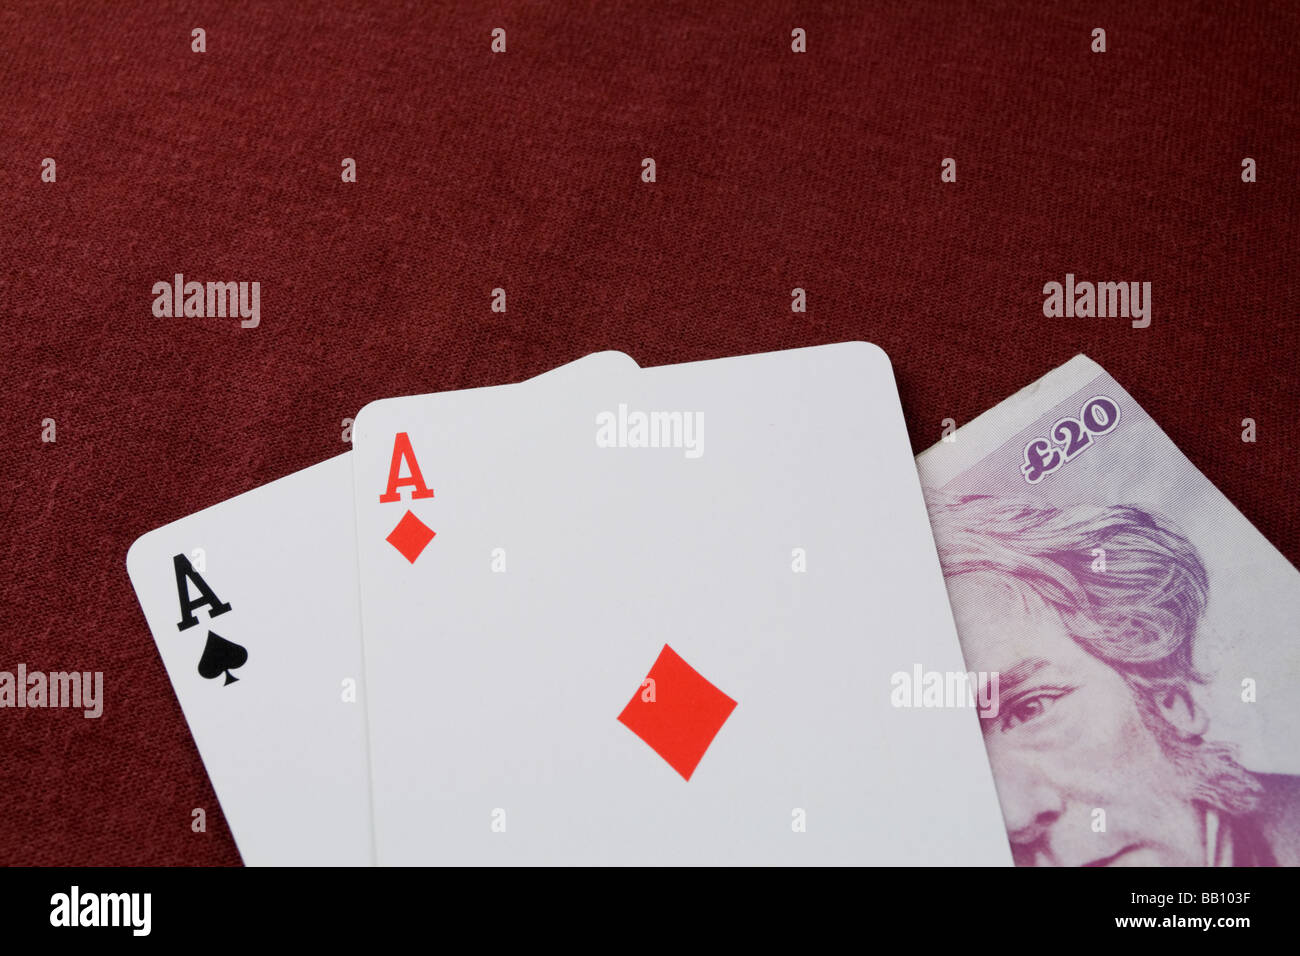 Ace of spades and ace of diamonds over 20 pound note - Stock Image